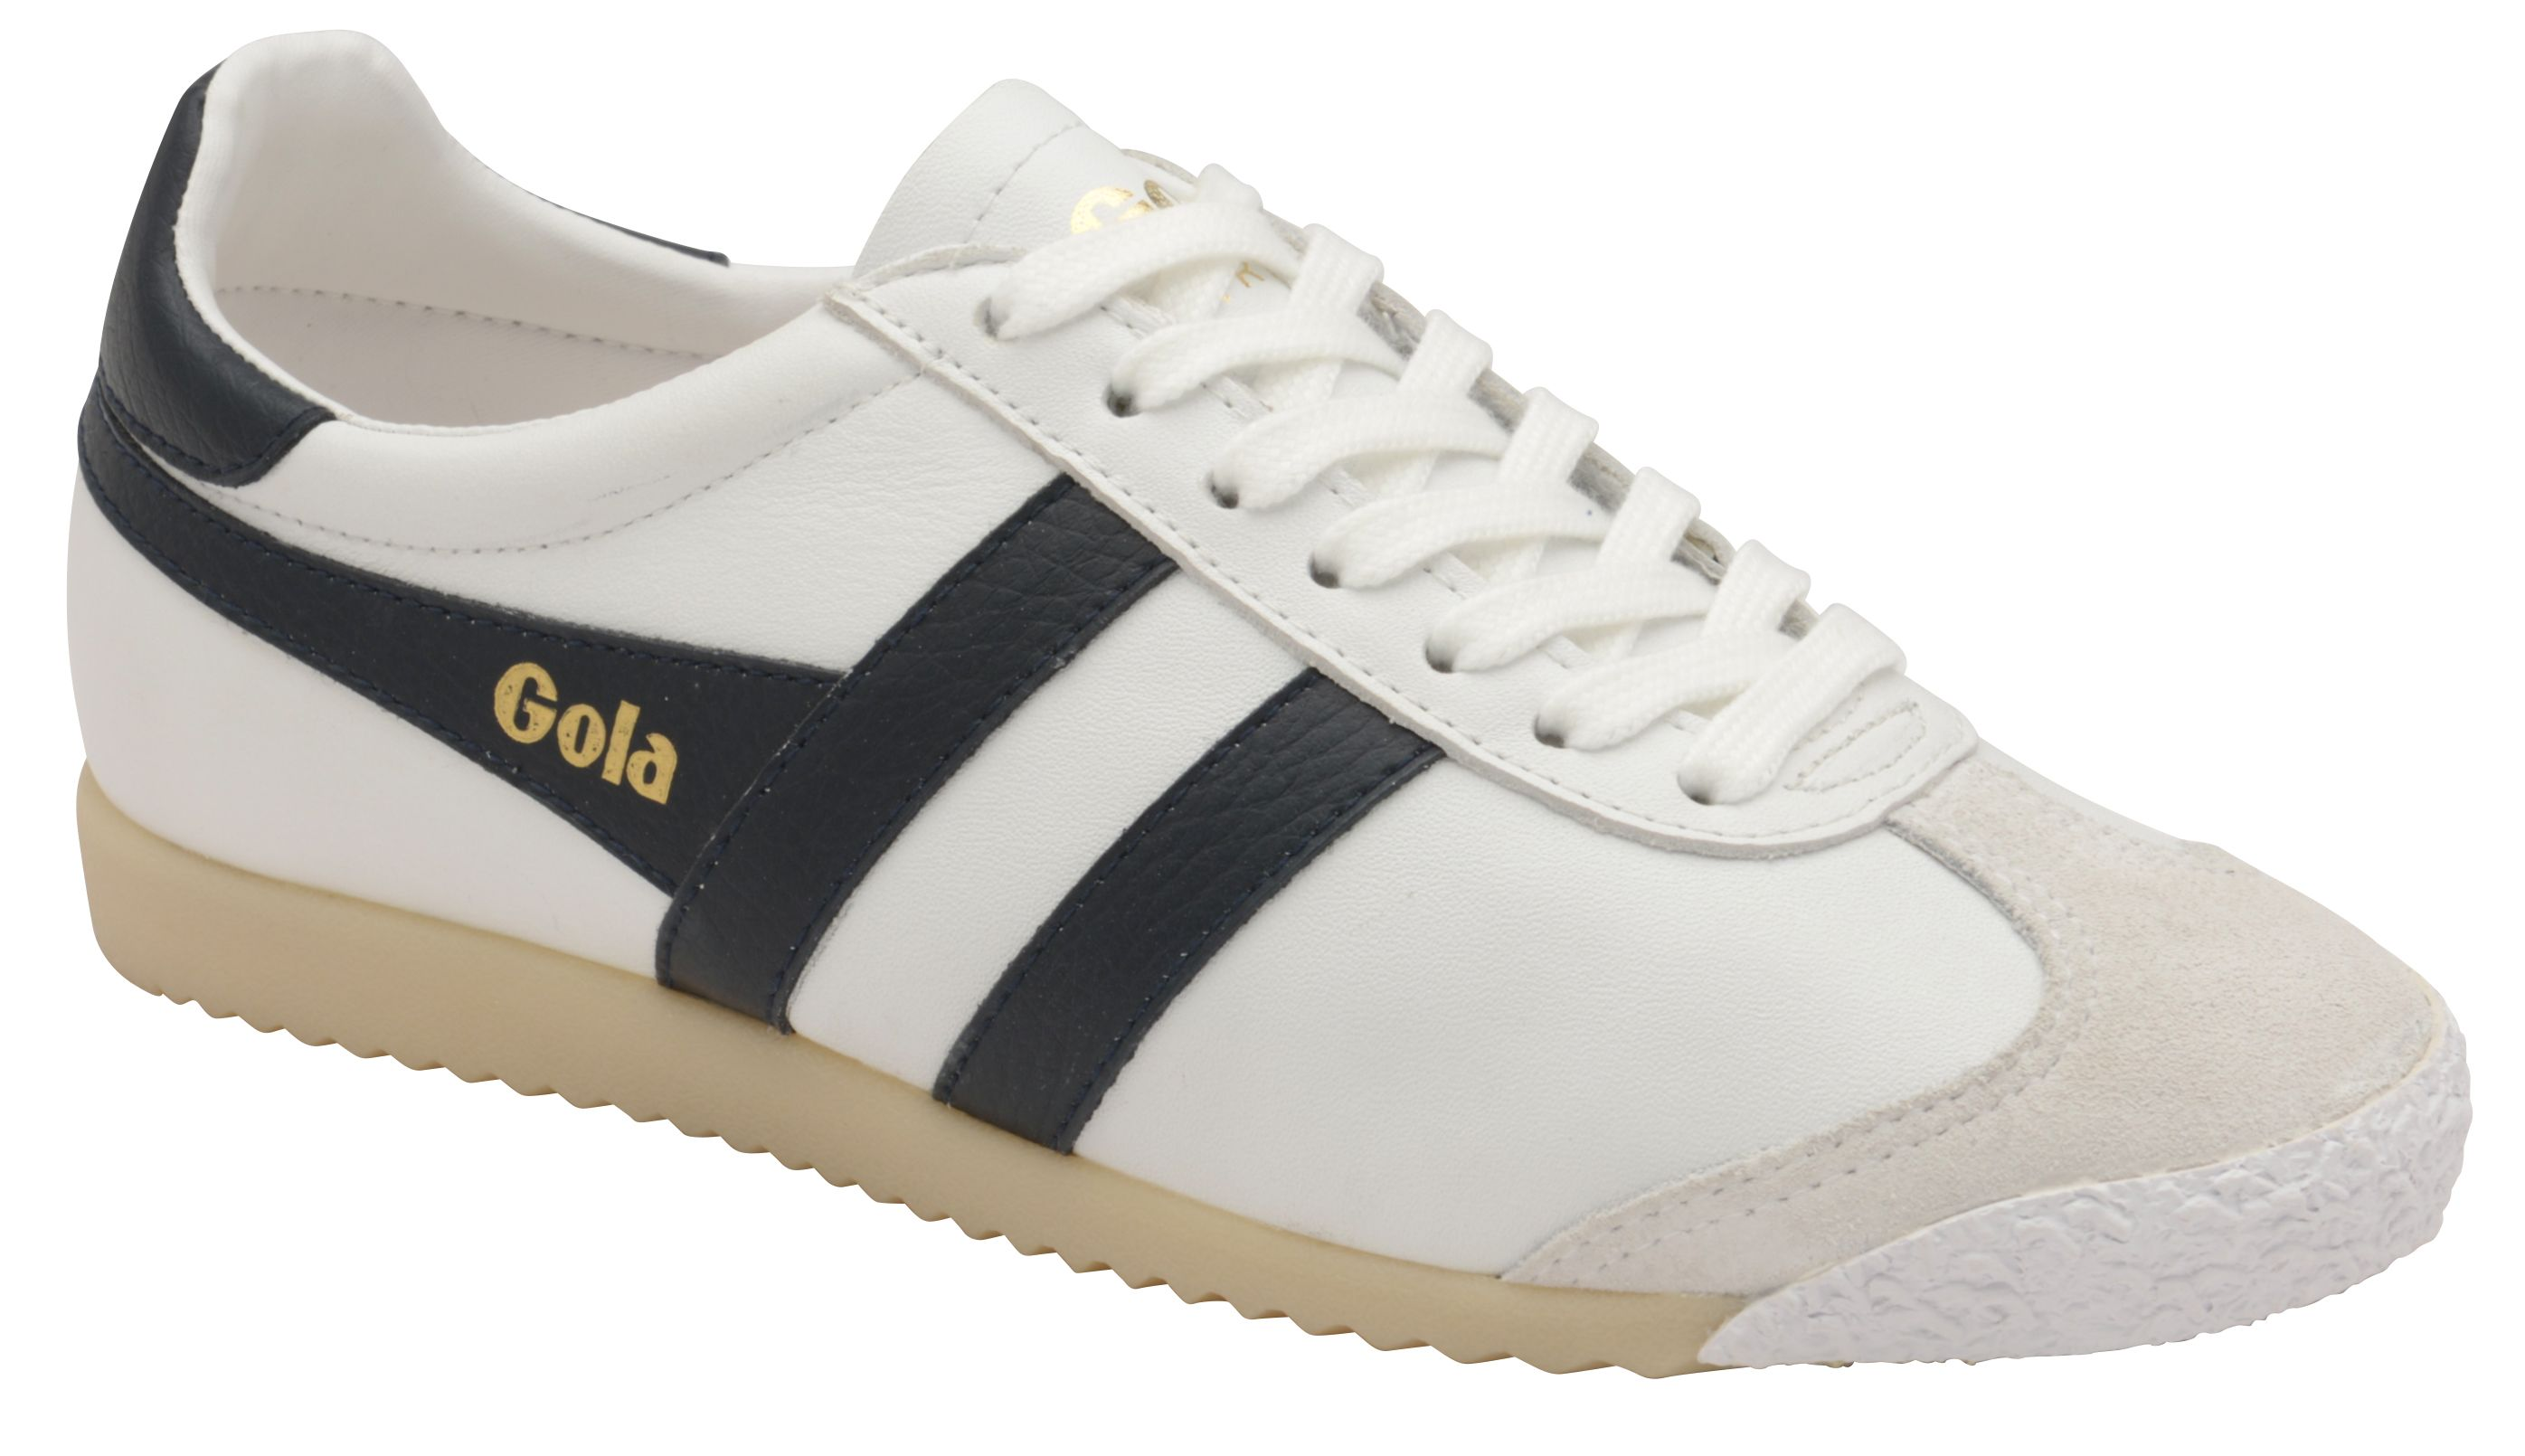 Gola Harrier 50 Leather Lace Up Trainers, White & Blue